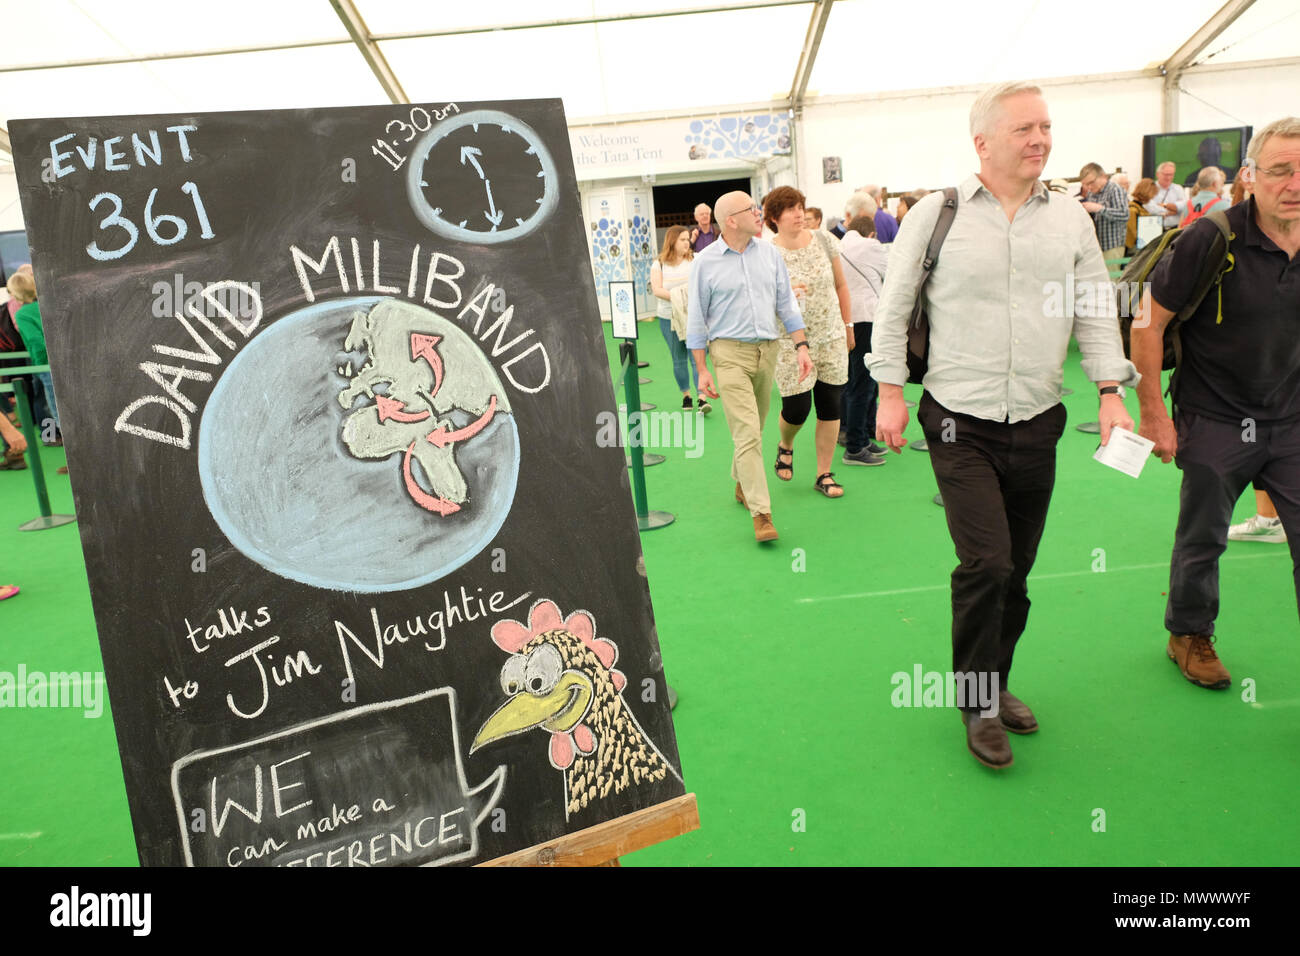 Hay Festival, Hay on Wye, UK. 2nd June 2018. Hay Festival.  Guests arrive for the David Milliband session at the Hay Festival - Milliband is President of the International Rescue Committee - Photo Steven May / Alamy Live News - Stock Image